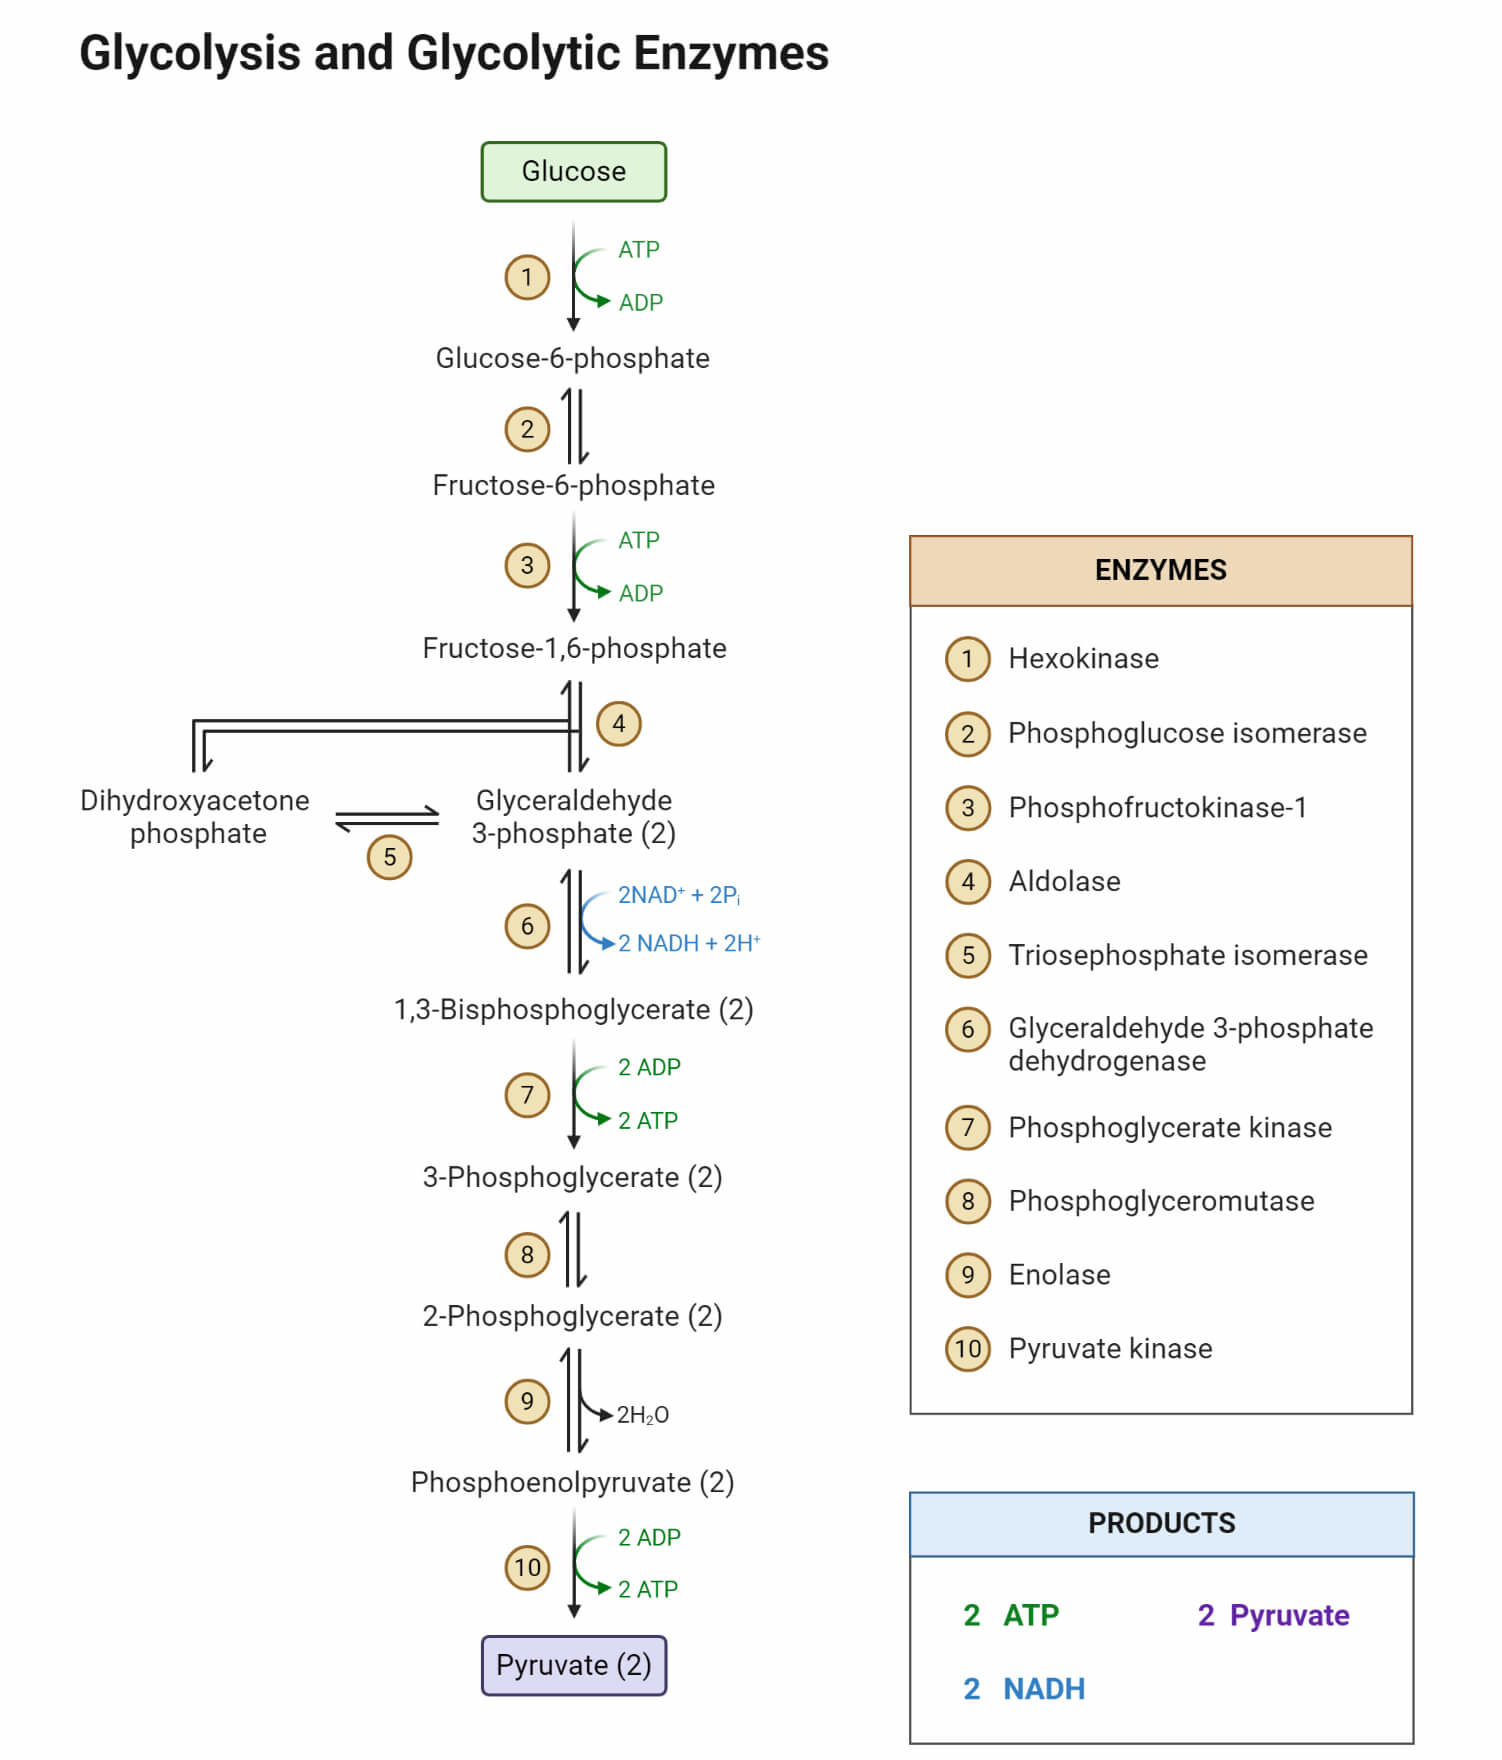 Glycolysis and Glycolytic Enzymes